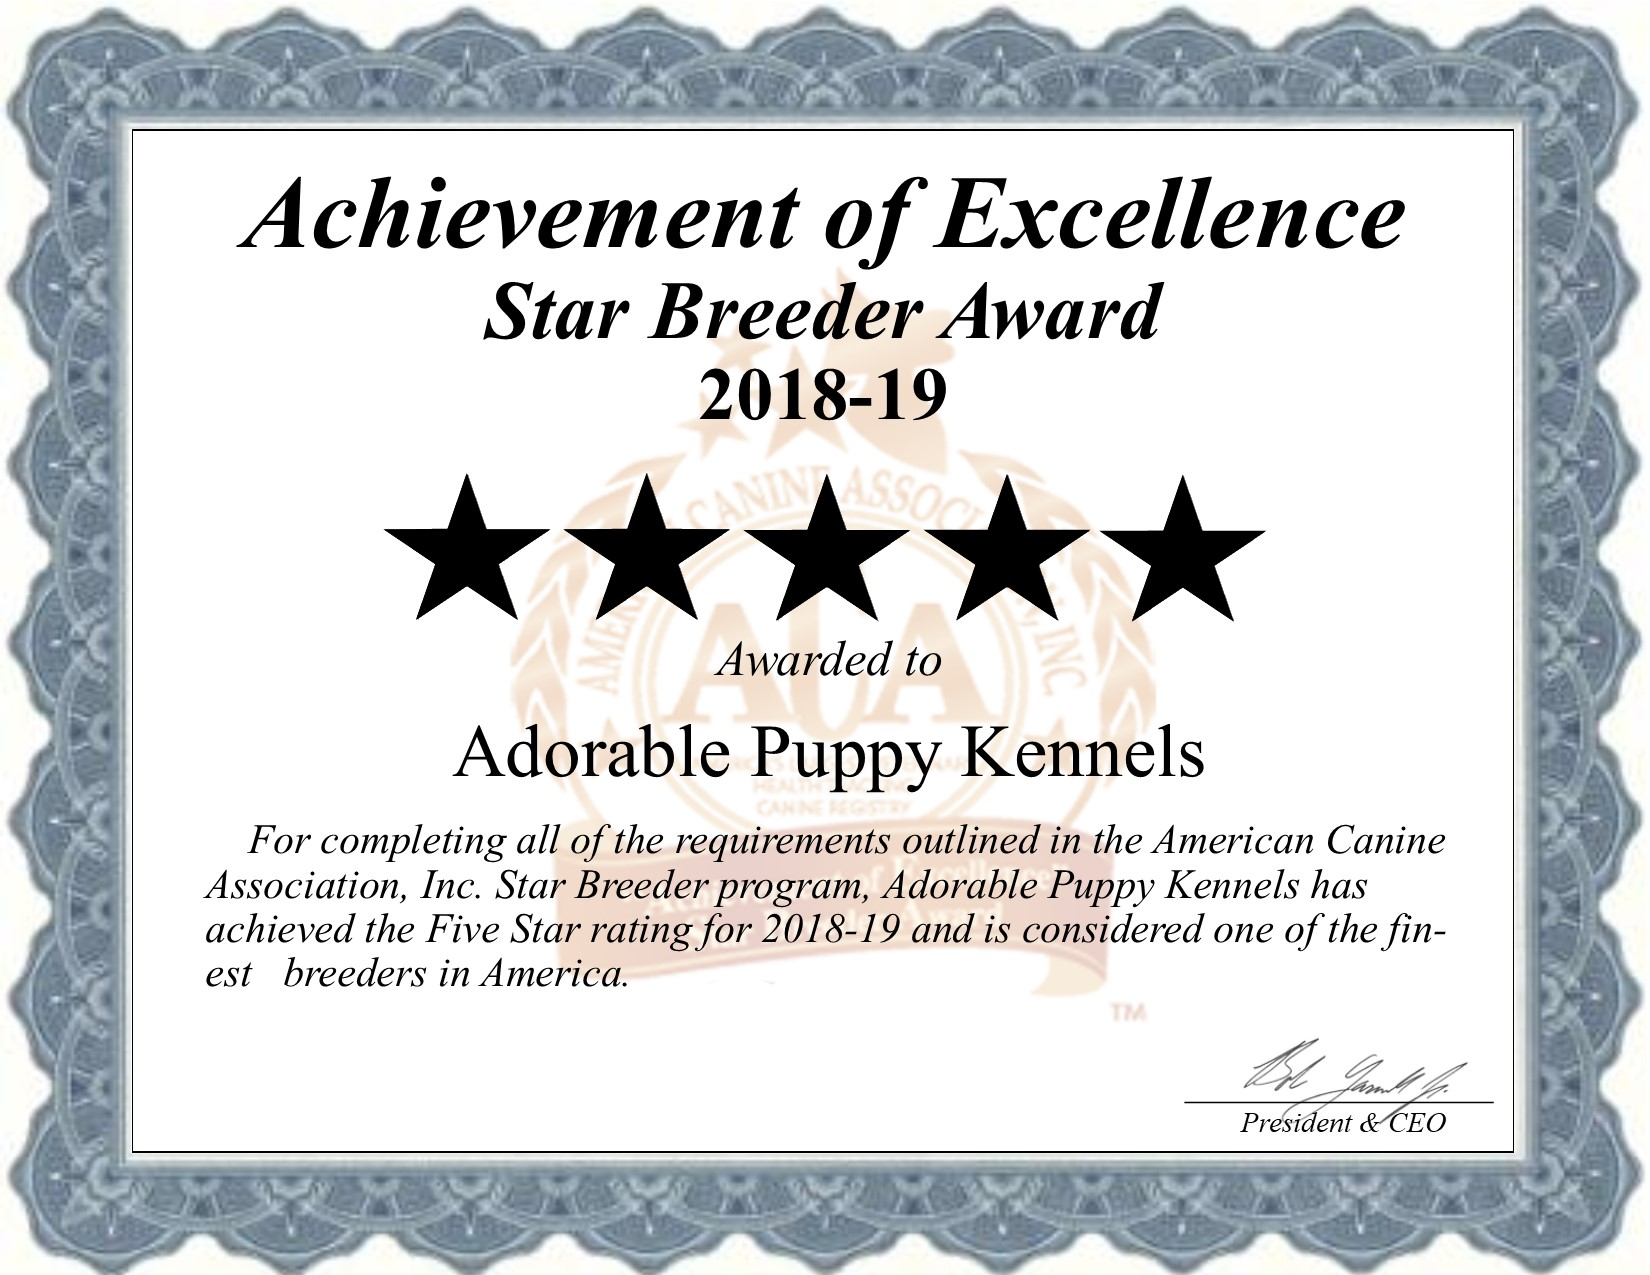 adorable, puppy, kennels, star, breeder, certificate, adorable-puppy, dog-breeder, kennel, reviews, customer, star, star-breeder, 5, five, USDA, rock, valley, ia, iowa  puppy, puppies, ACA, inspection, inspections, reports, mill, puppymill, mills;